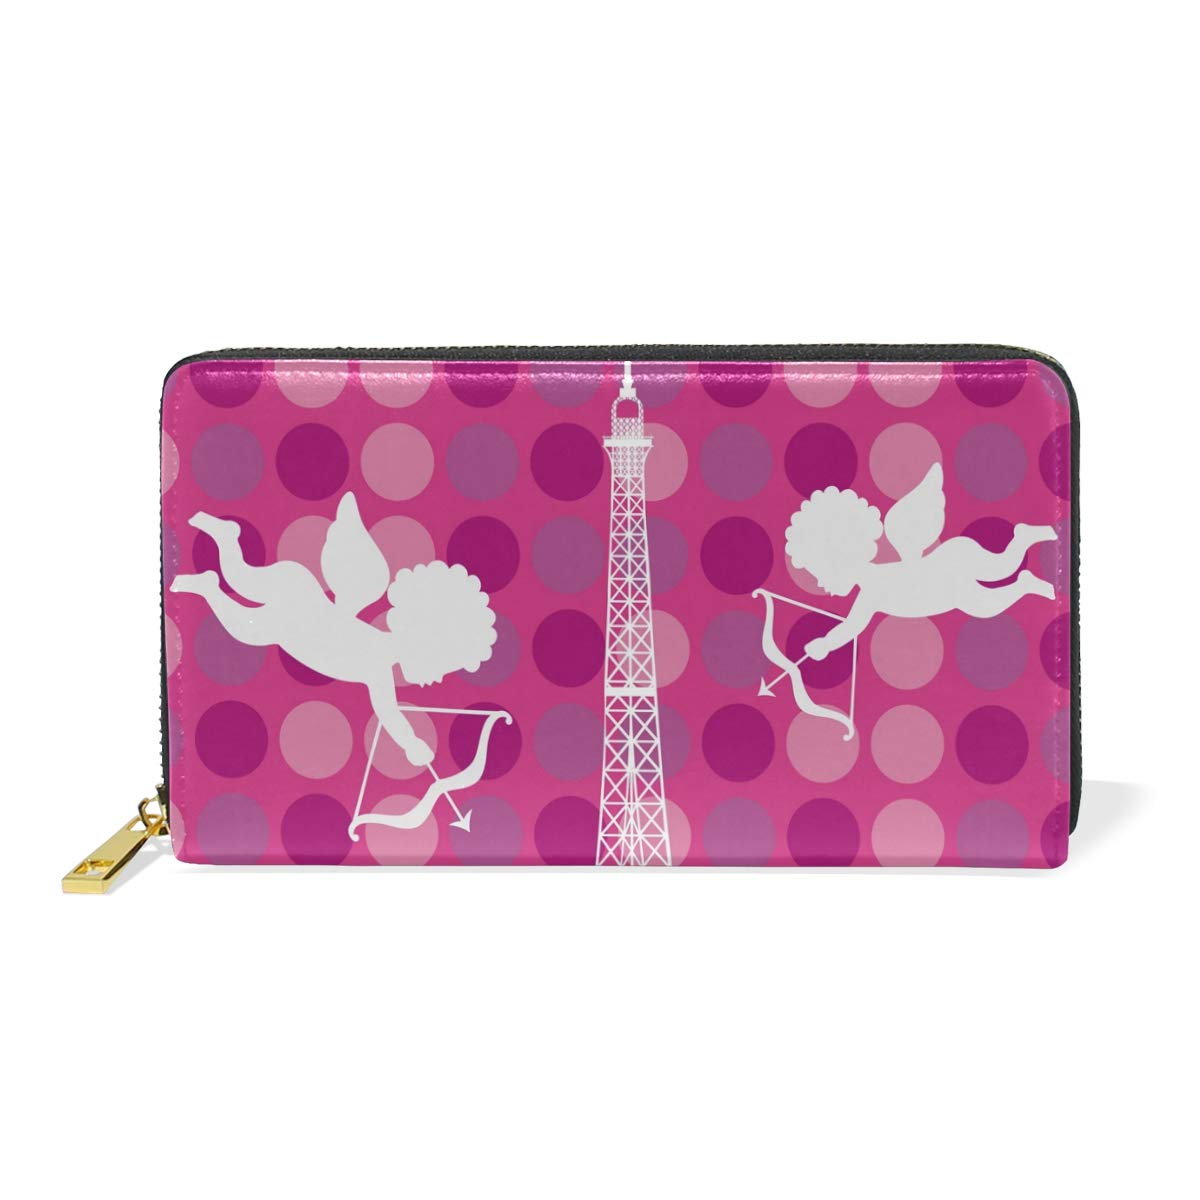 color3 Genuine Leather Women's Around Zip Wallet Paris Eiffel Tower Travel Illustration Purse Clutch Card Holder for Girl